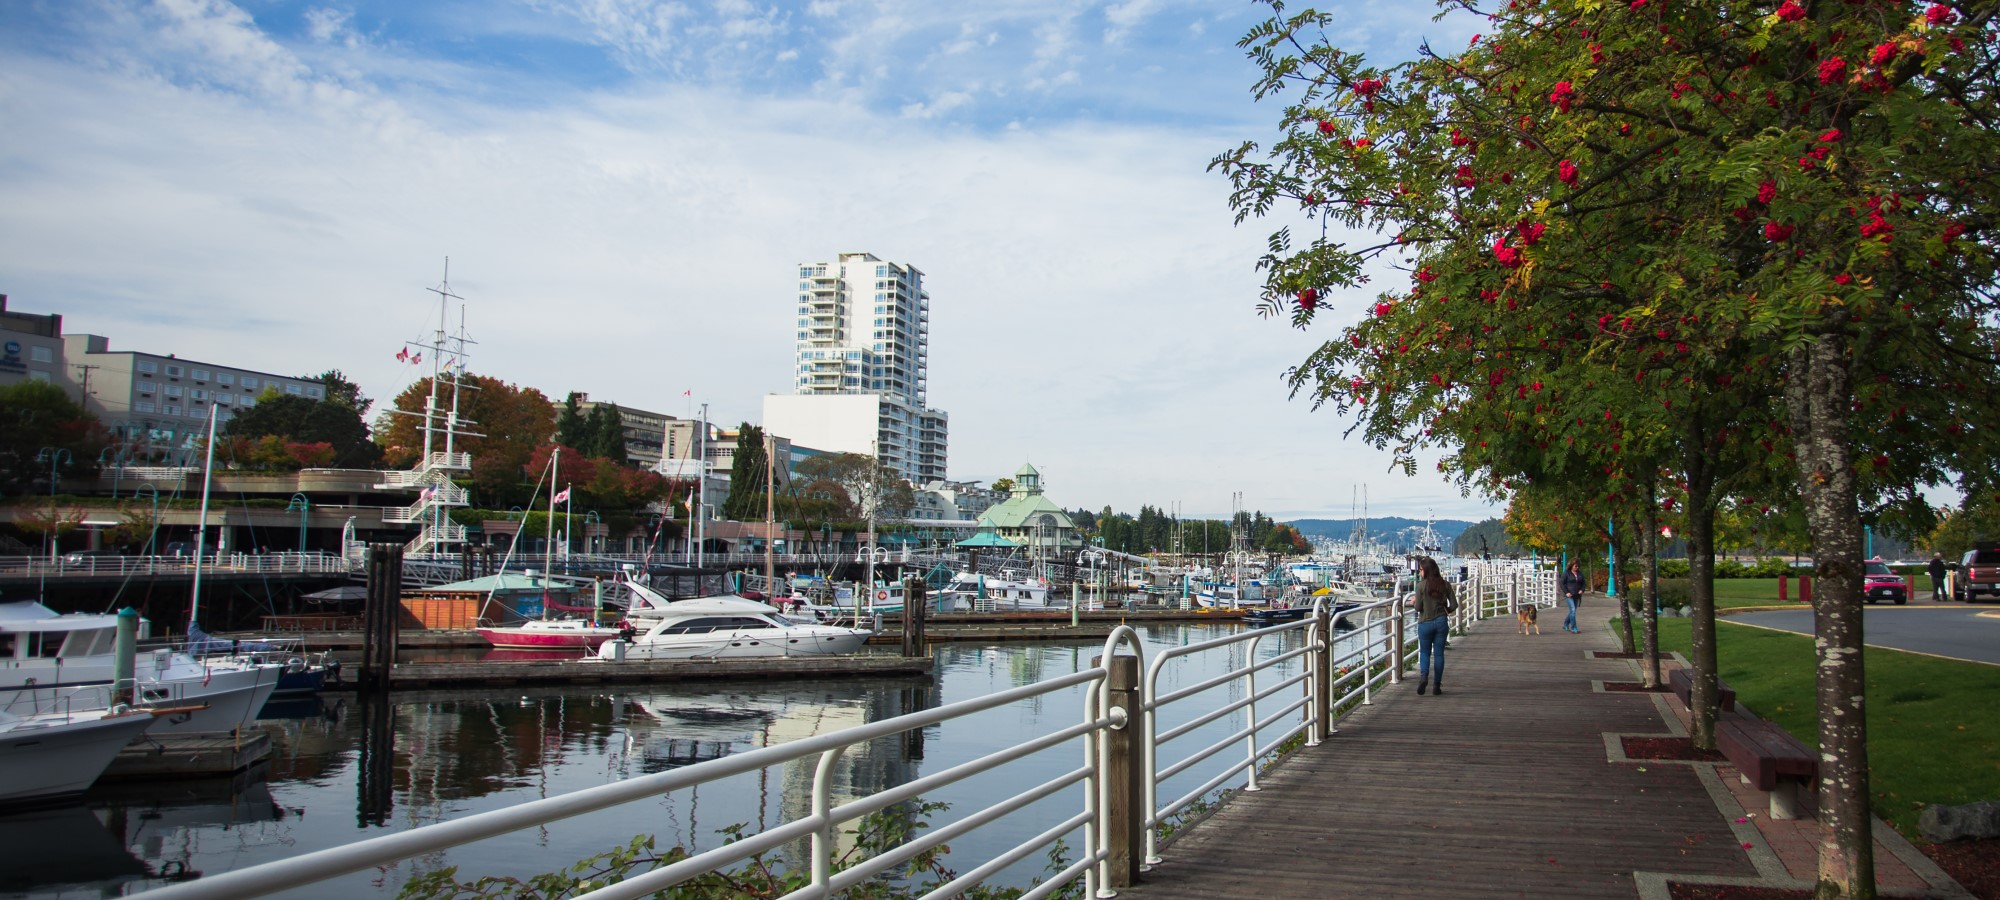 Nanaimo, British Columbia Raises the Bar